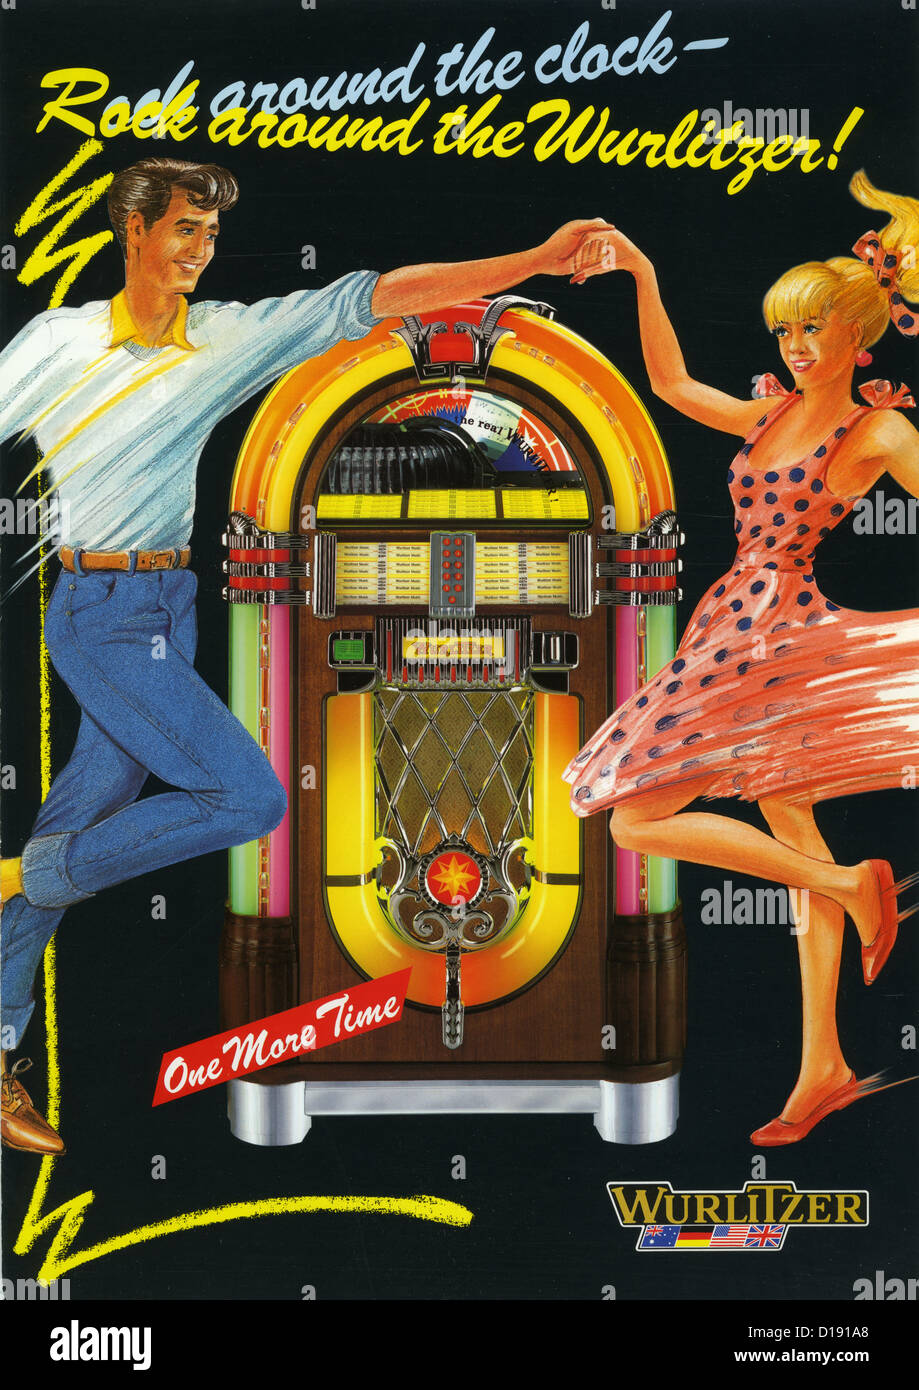 WURLITZER JUKEBOX advert showing a model 1015 Stock Photo